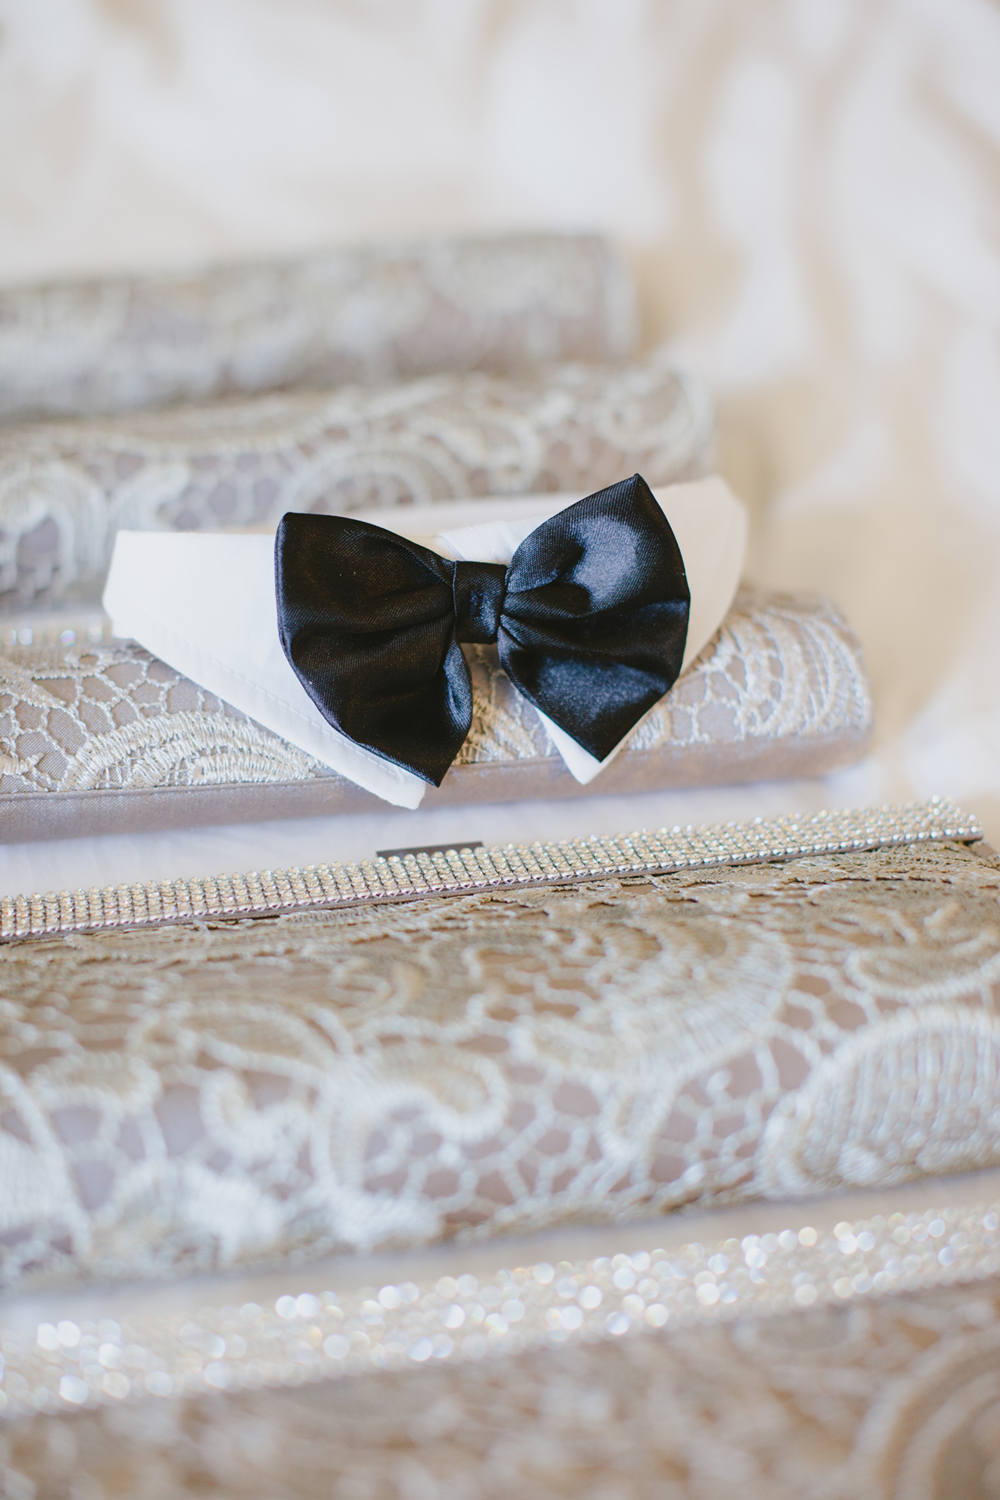 Saratoga-Springs-Outdoor-Rustic-Wedding-Details-05.JPG